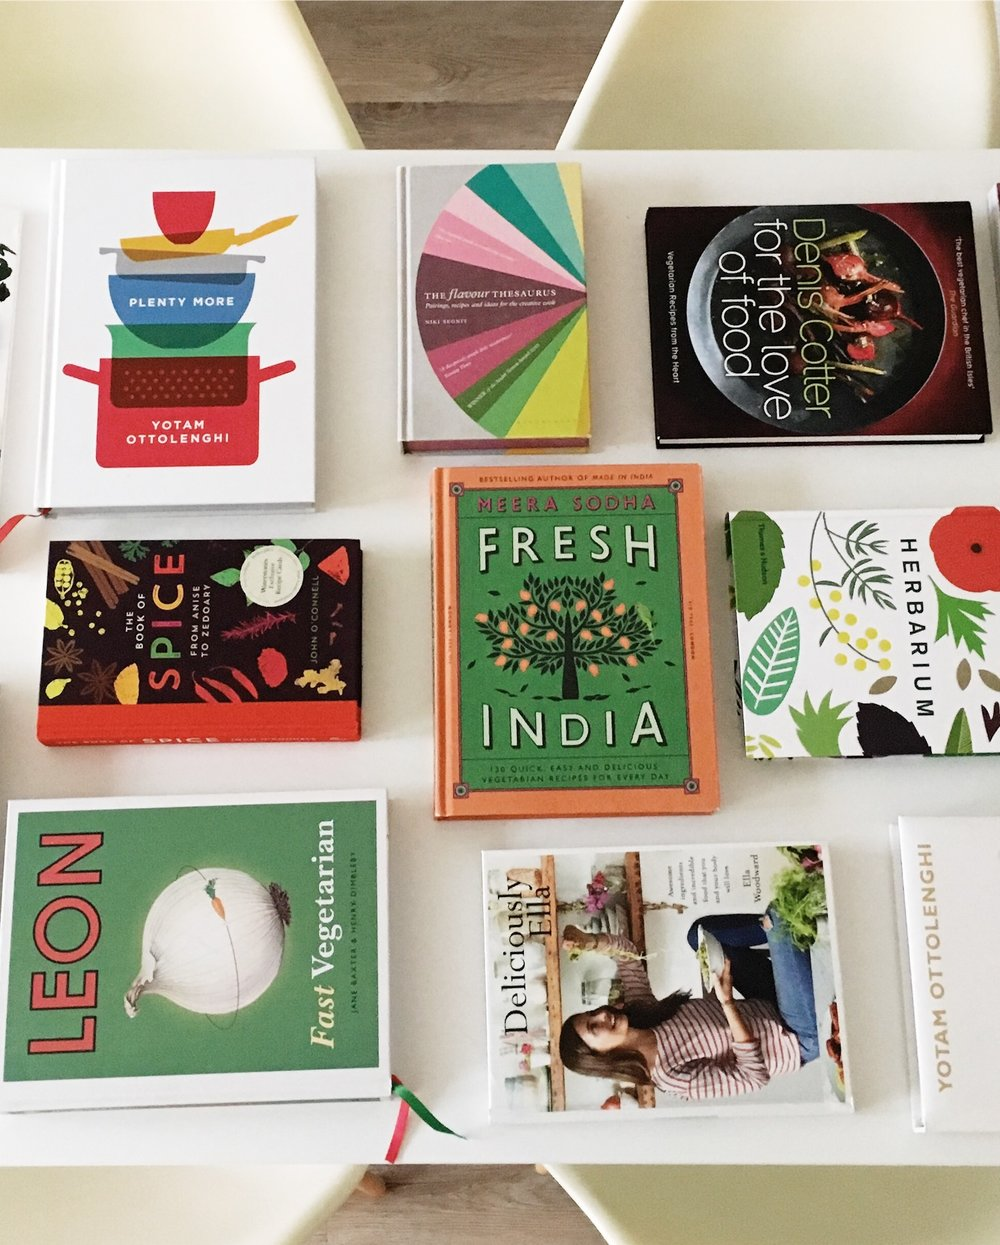 My Fave Vegetarian Cookbooks